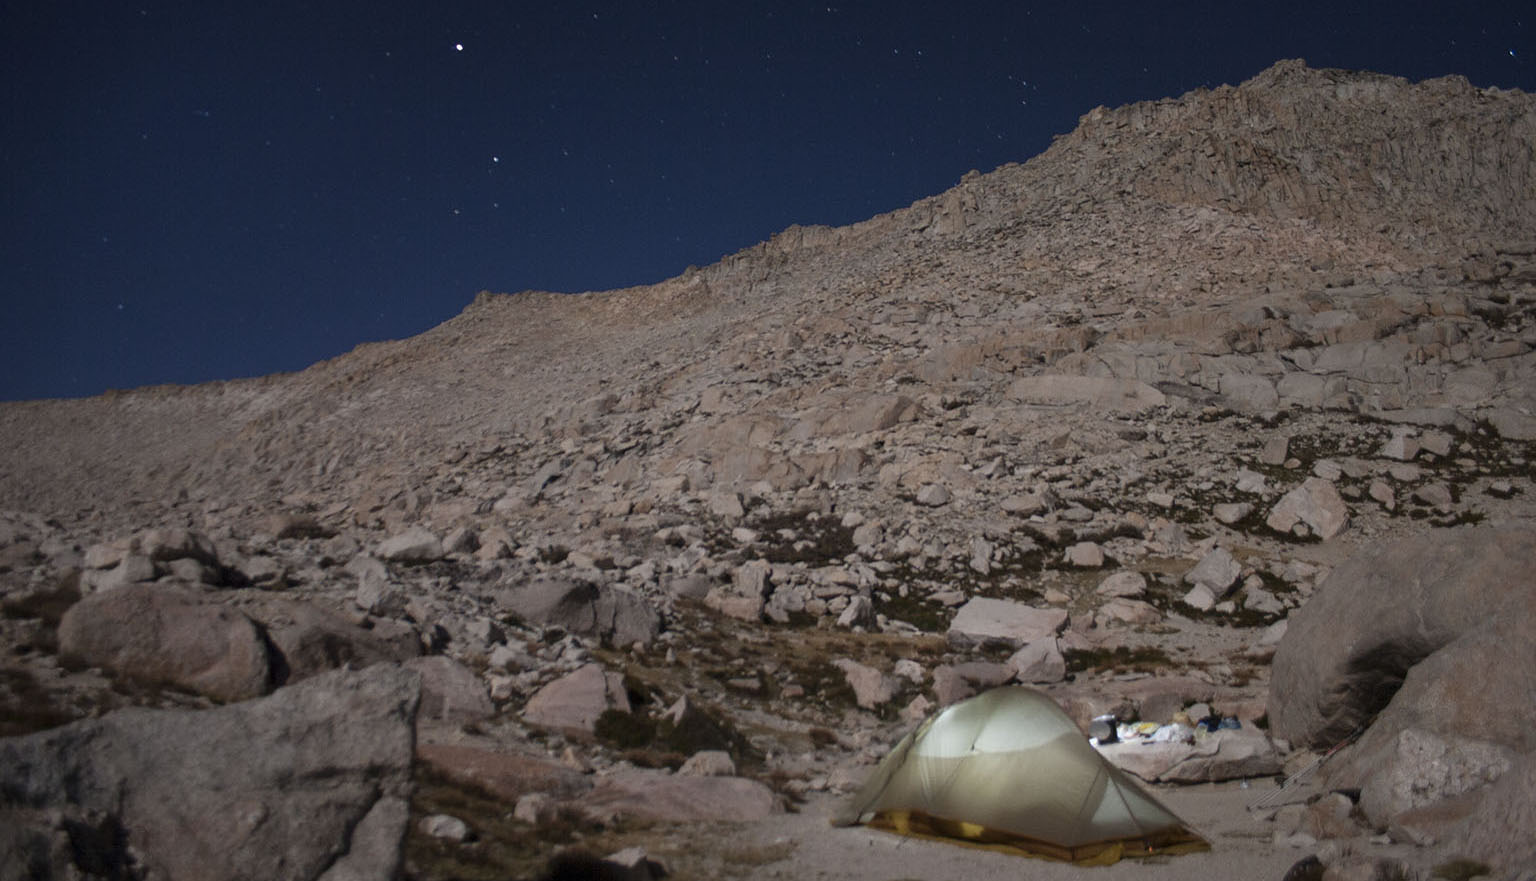 Our moonlit camp at High Lake, New Army Pass in the background